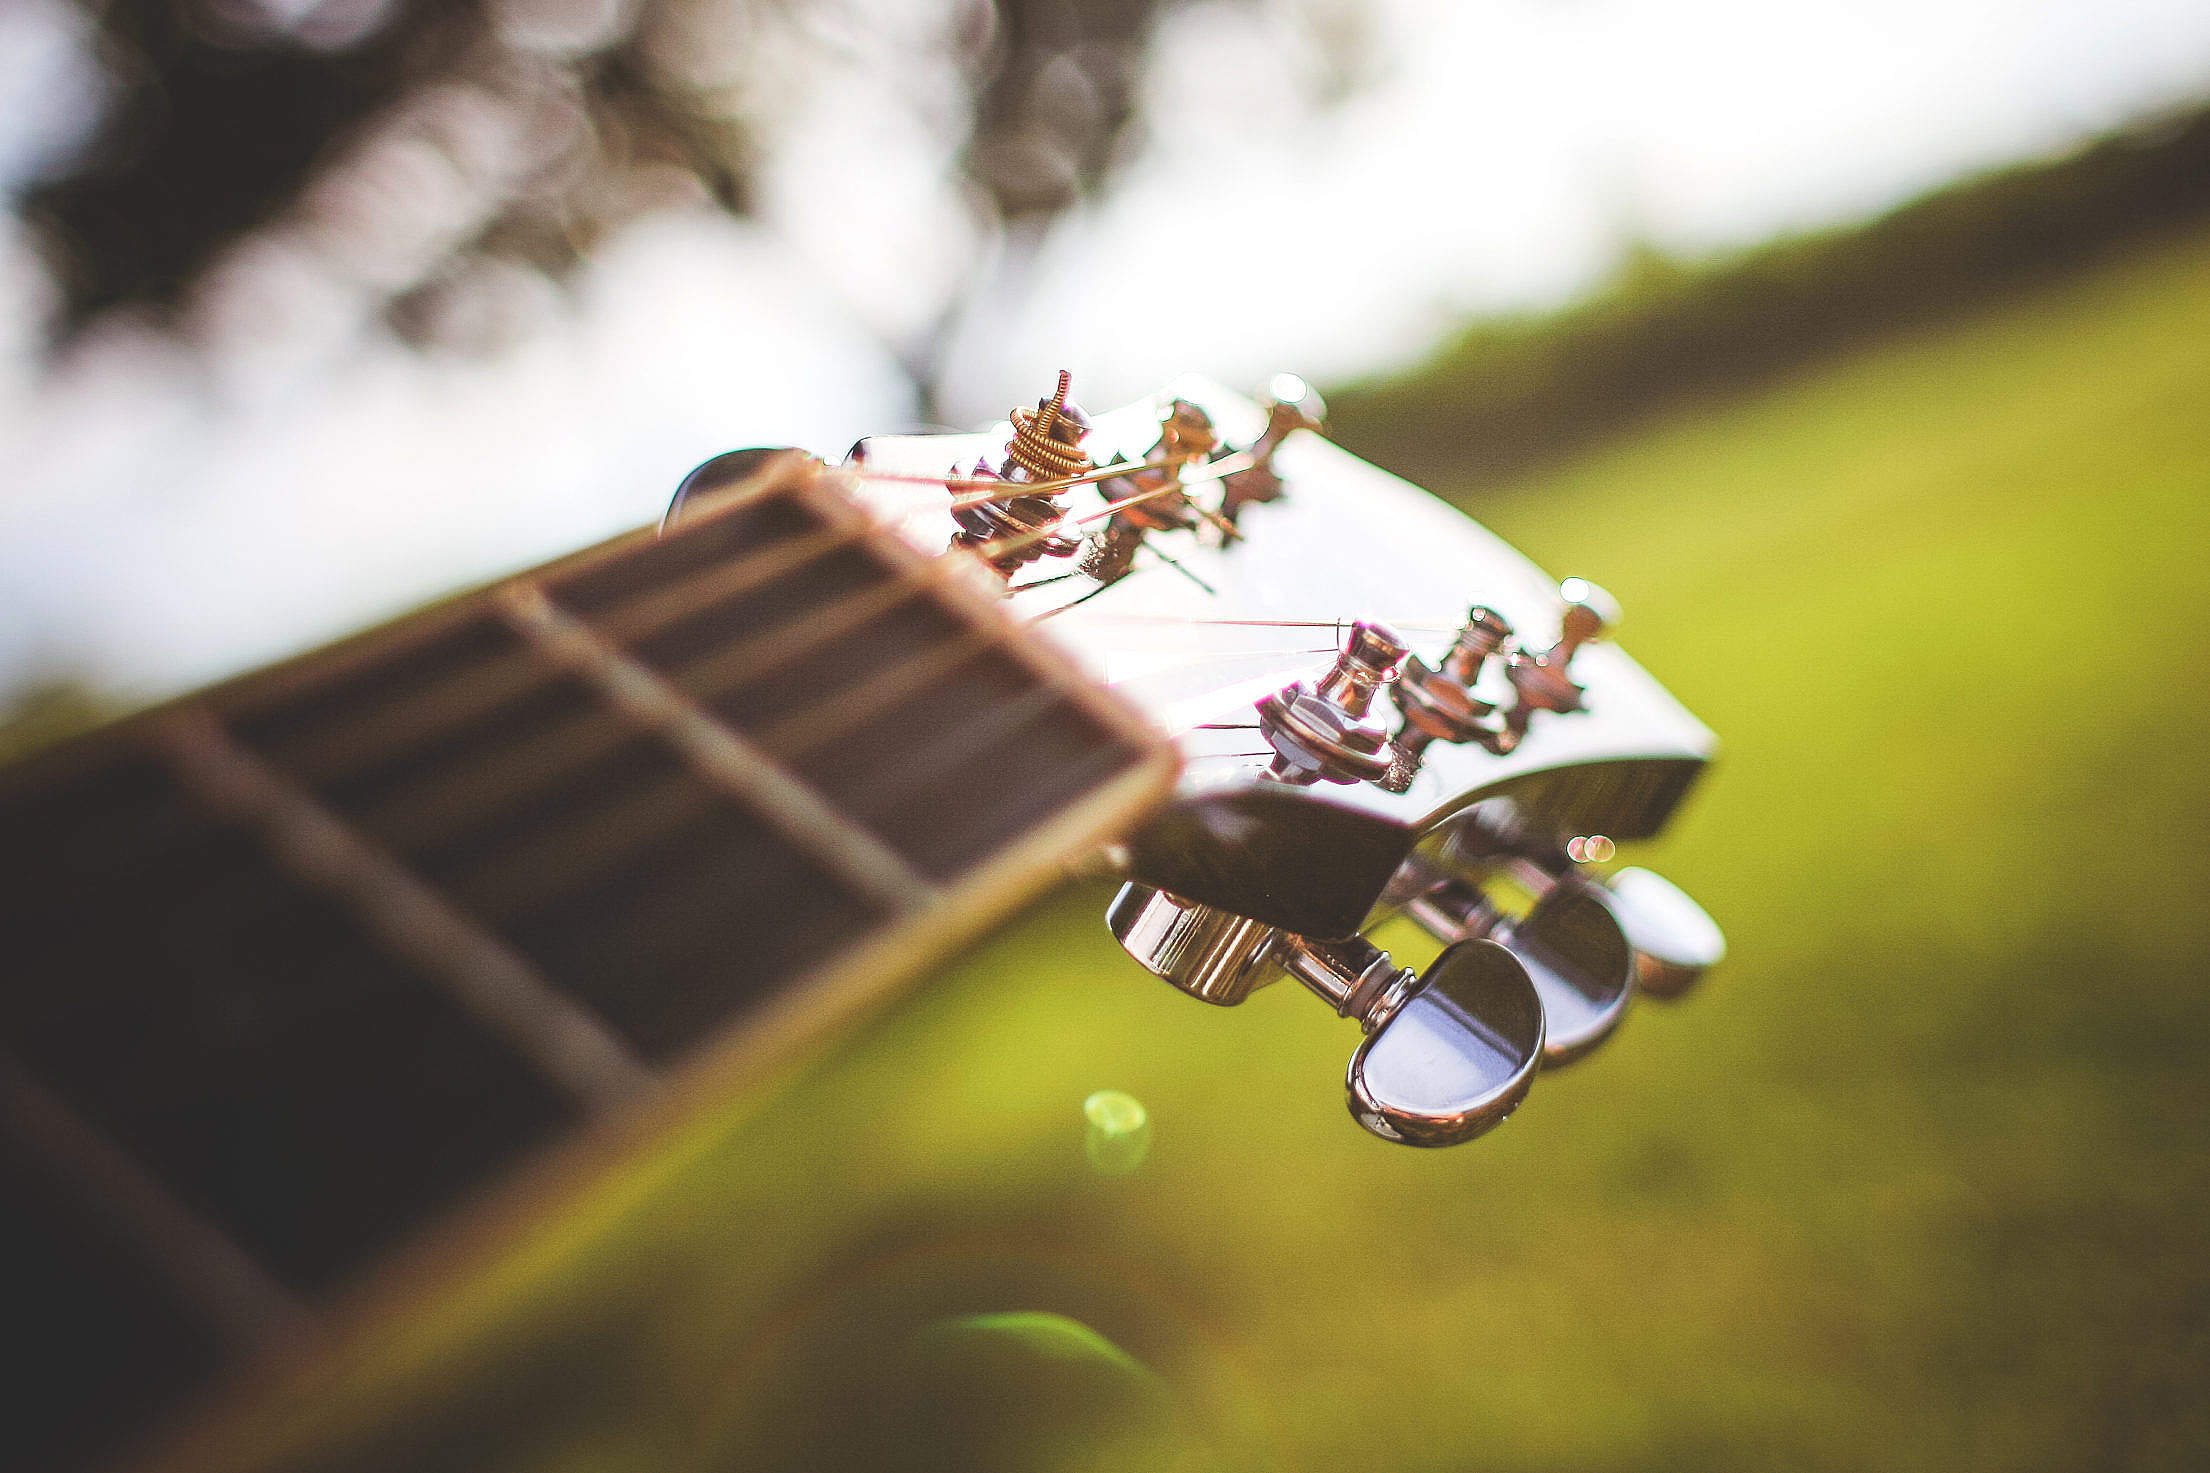 Head of Guitar Close Up, Tuning Pegs Close Up Free Stock Photo